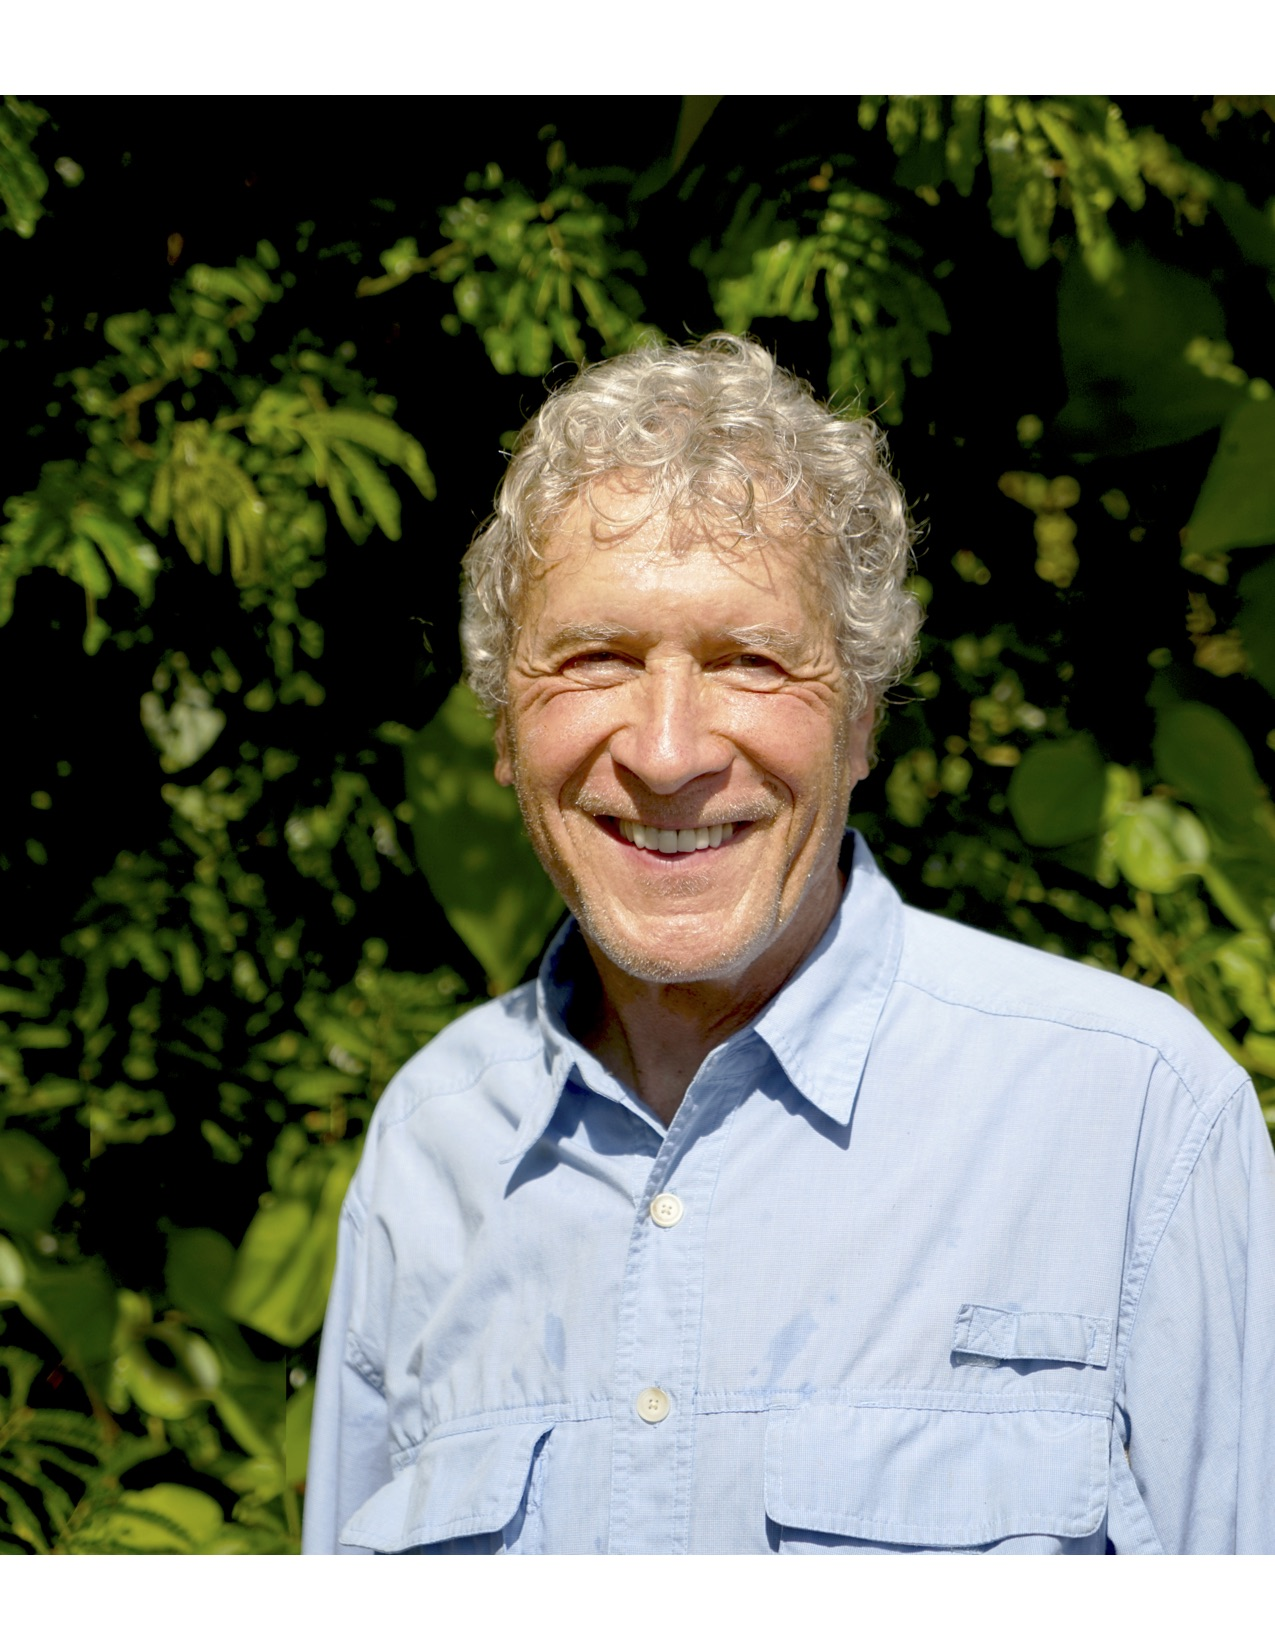 John Perkins,   former Chief Economist, has trained with shamans around the world and is co-counder of  The Pachamama Alliance  and  Dream Change . He is the author of many books including his latest,   The New Confessions of an Economic Hit Man.